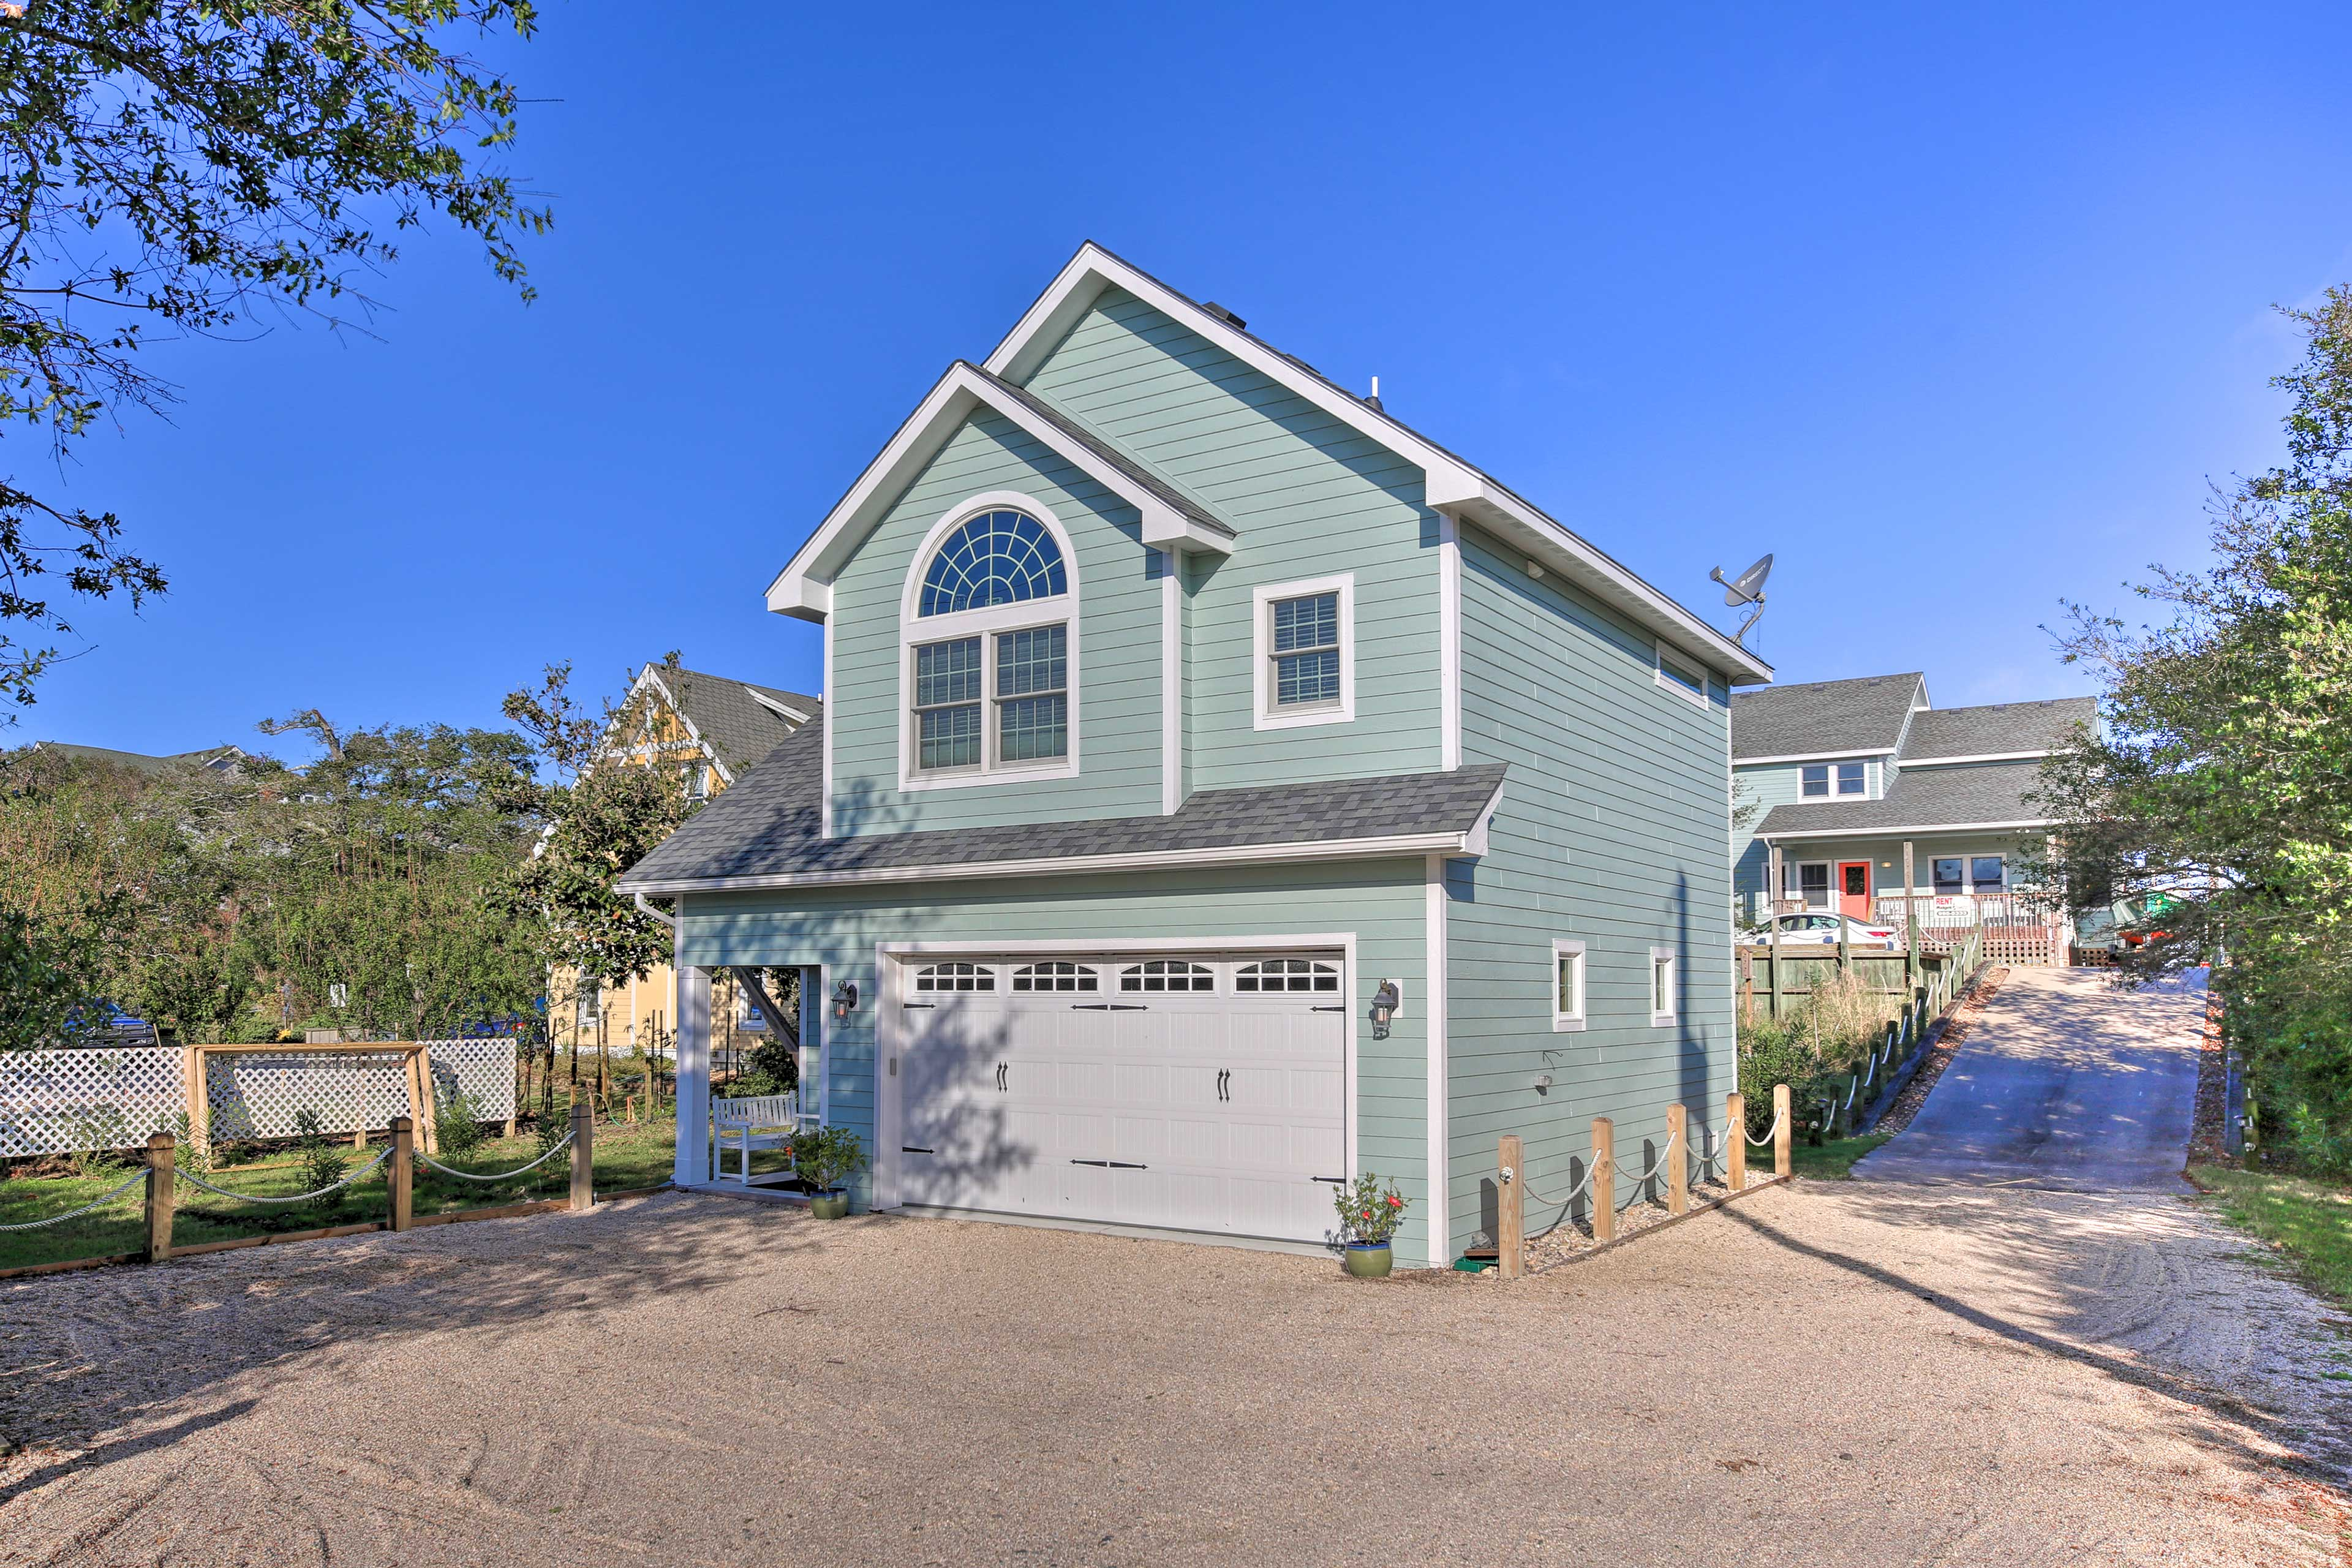 Call this bright blue cottage home for a spontaneous coastal getaway!